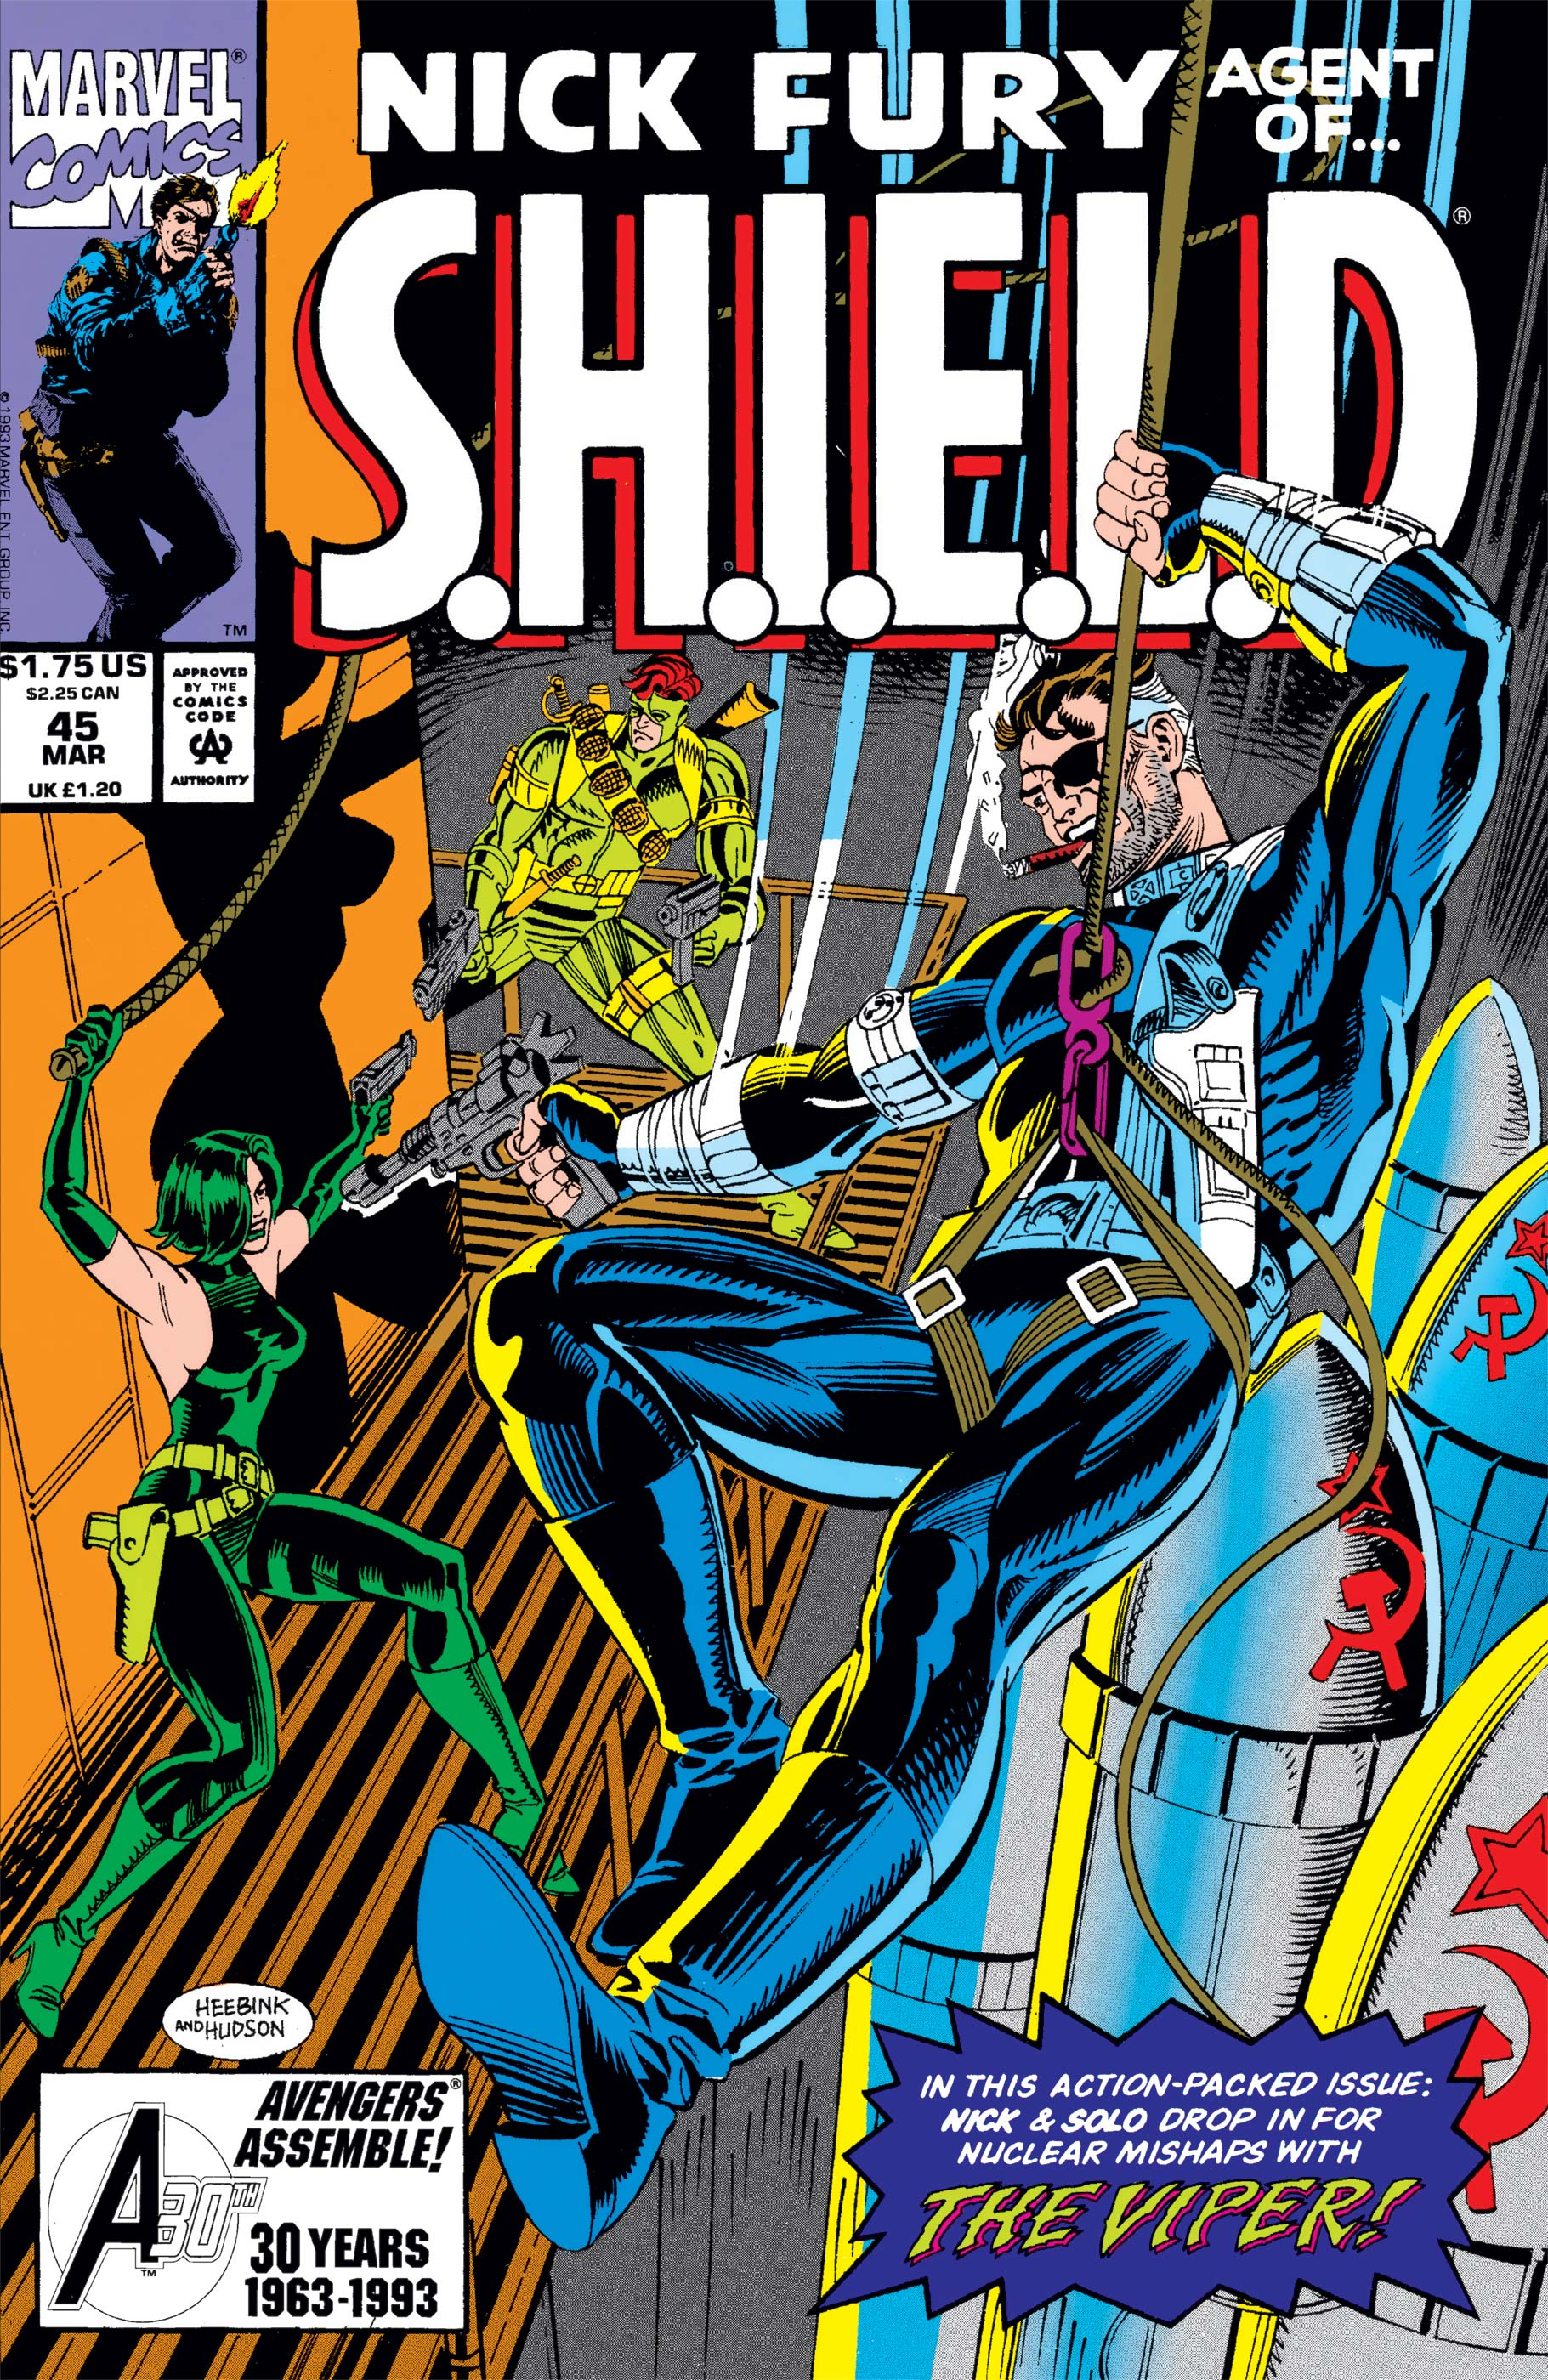 Nick Fury, Agent of S.H.I.E.L.D. (1989) #45